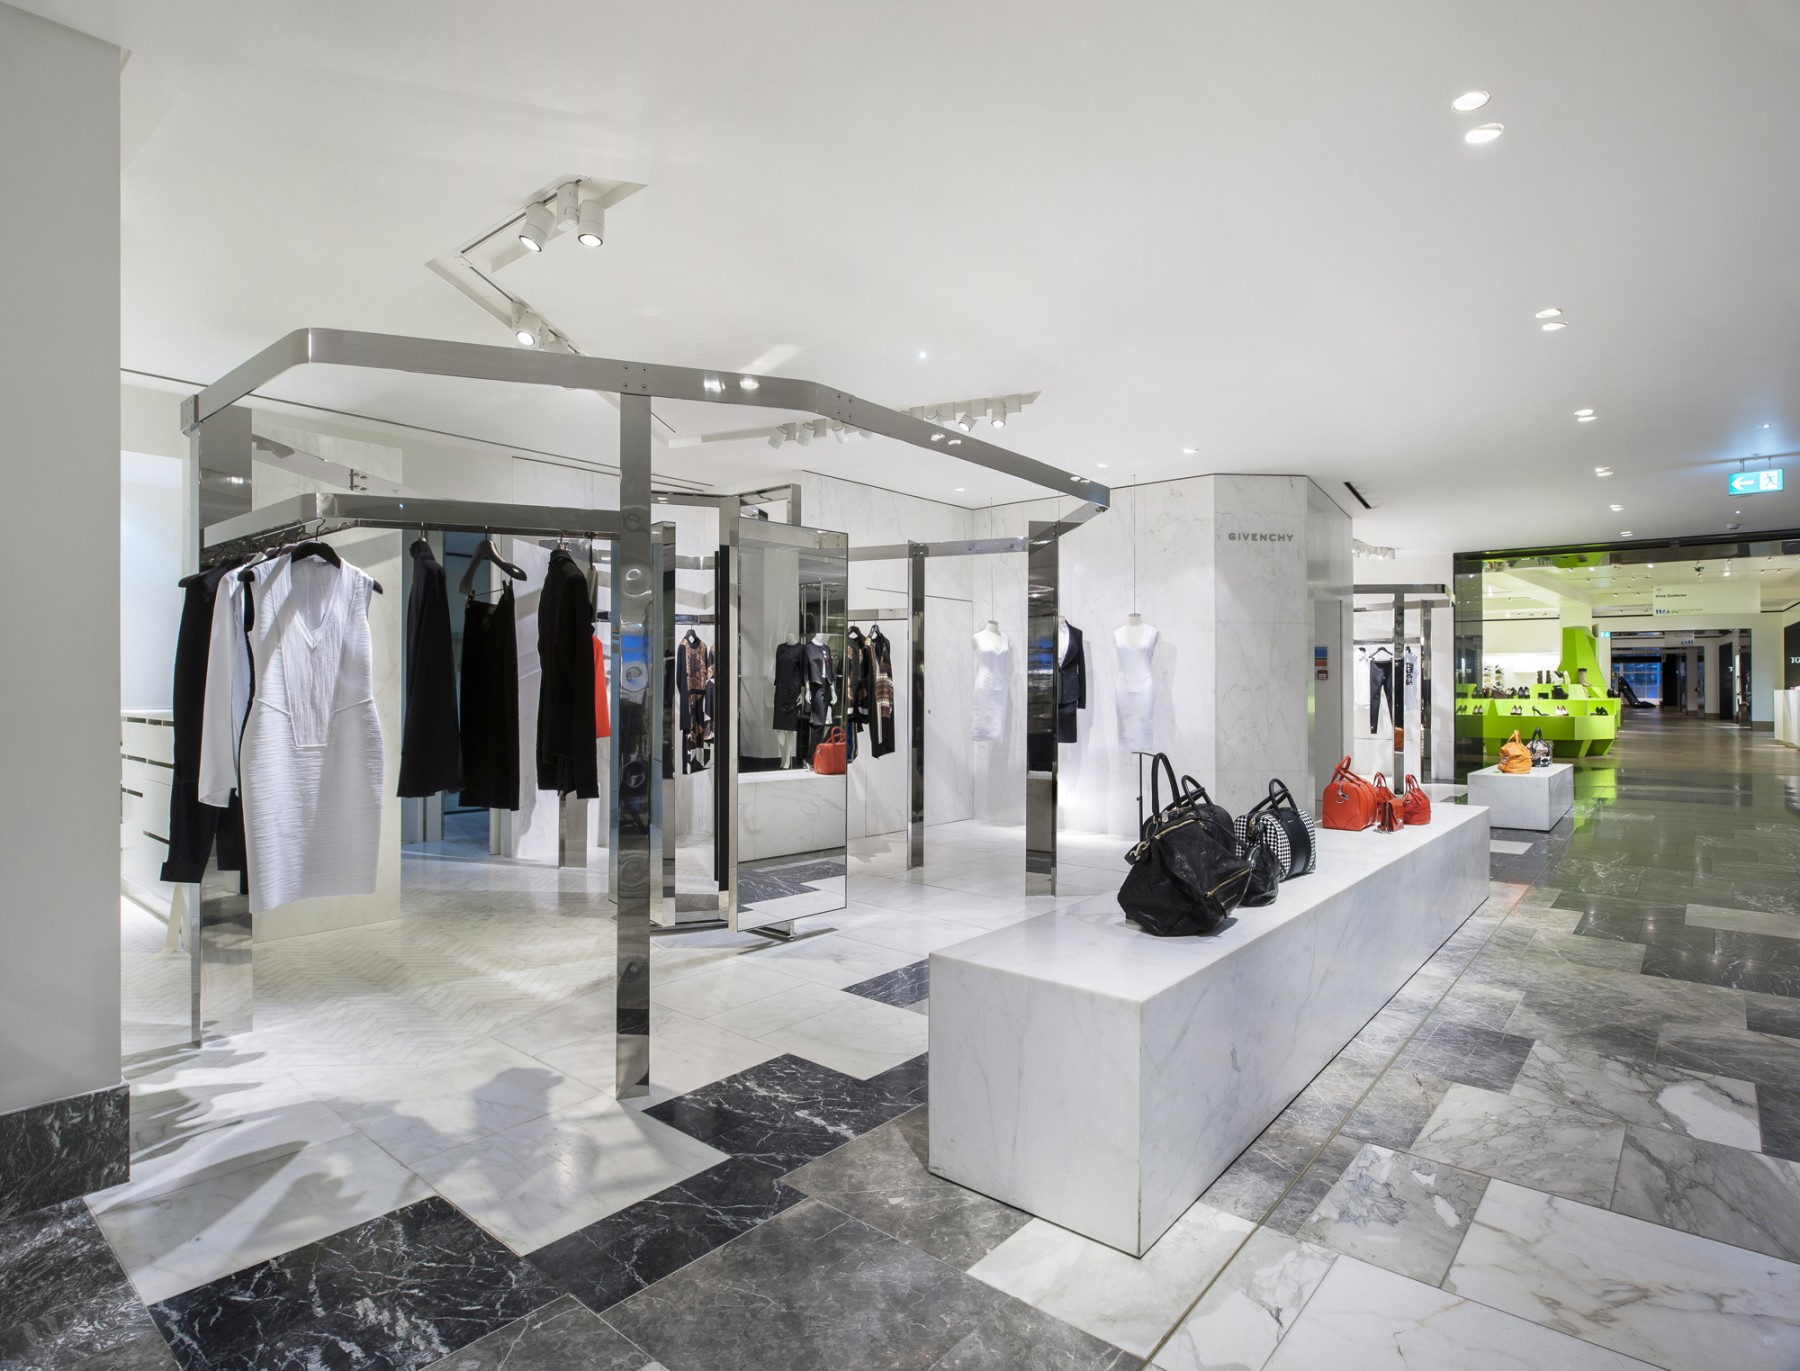 Selfridges-London-designer-fashion-retail-Jamie-Fobert-Architects-shop-marble-floor-womenswear-2